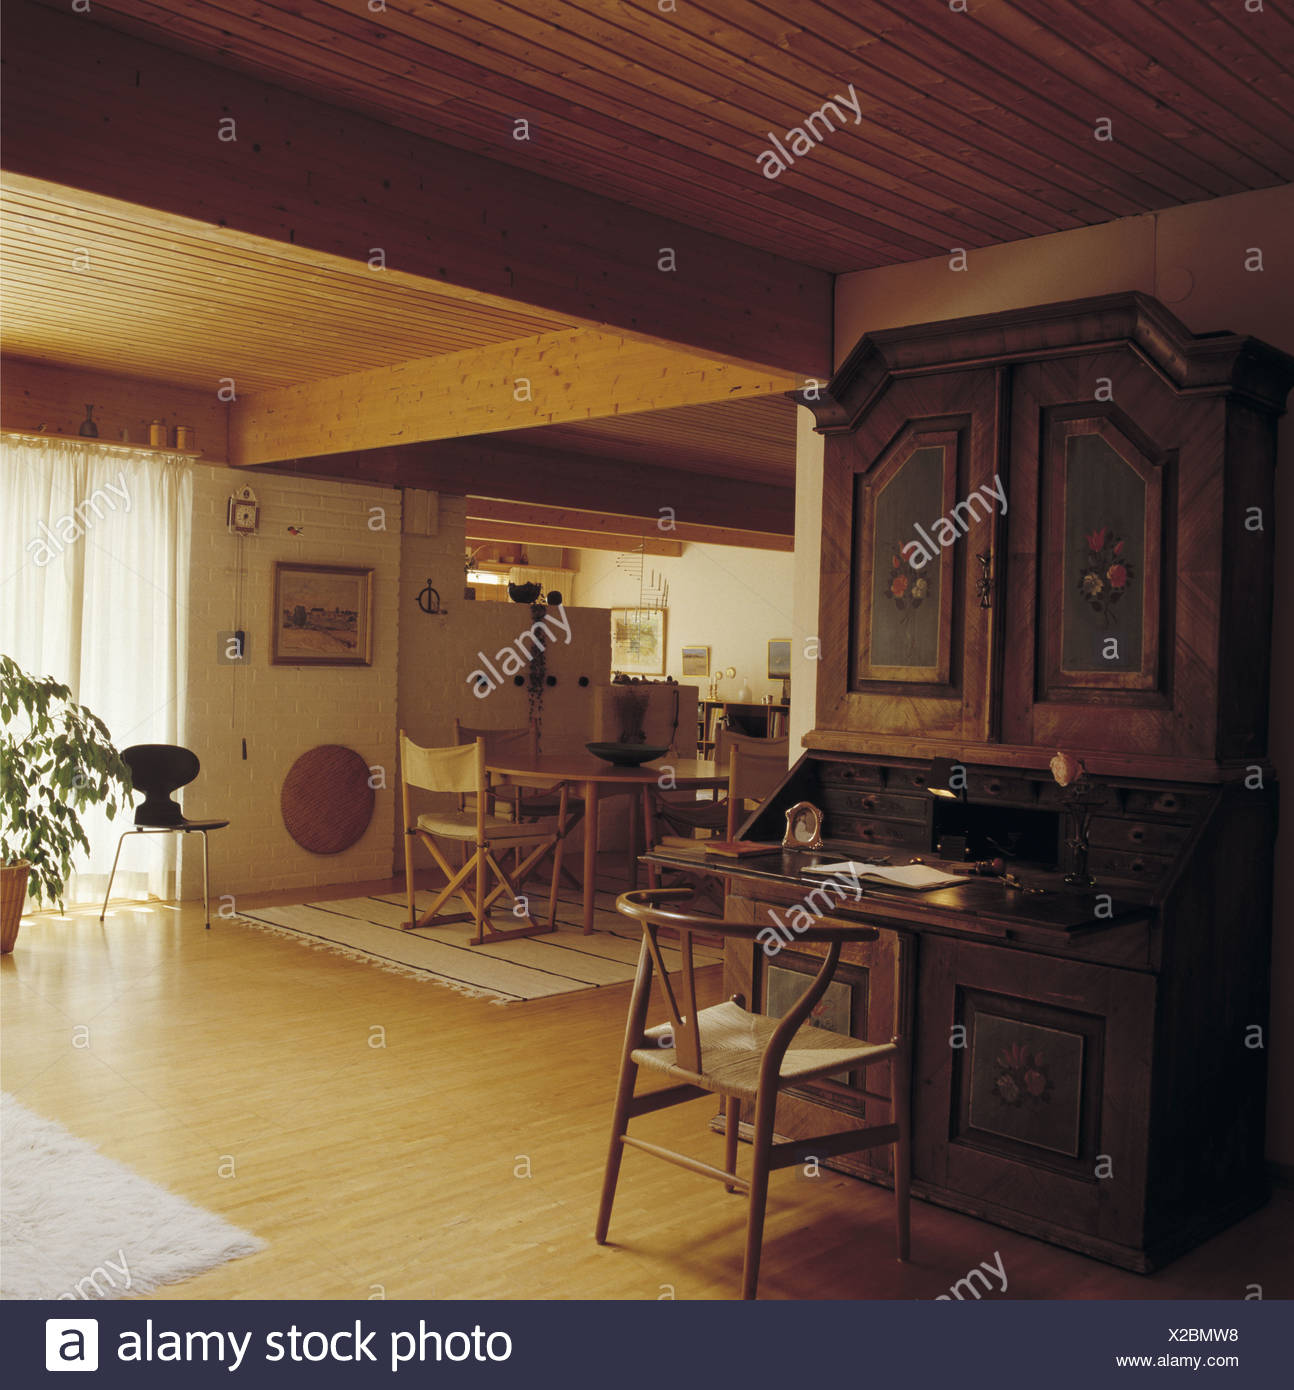 Fifties Chair And Antique Painted Scandinavian Bureau In Scandinavian  Country Dining Room With Wooden Flooring And Ceiling